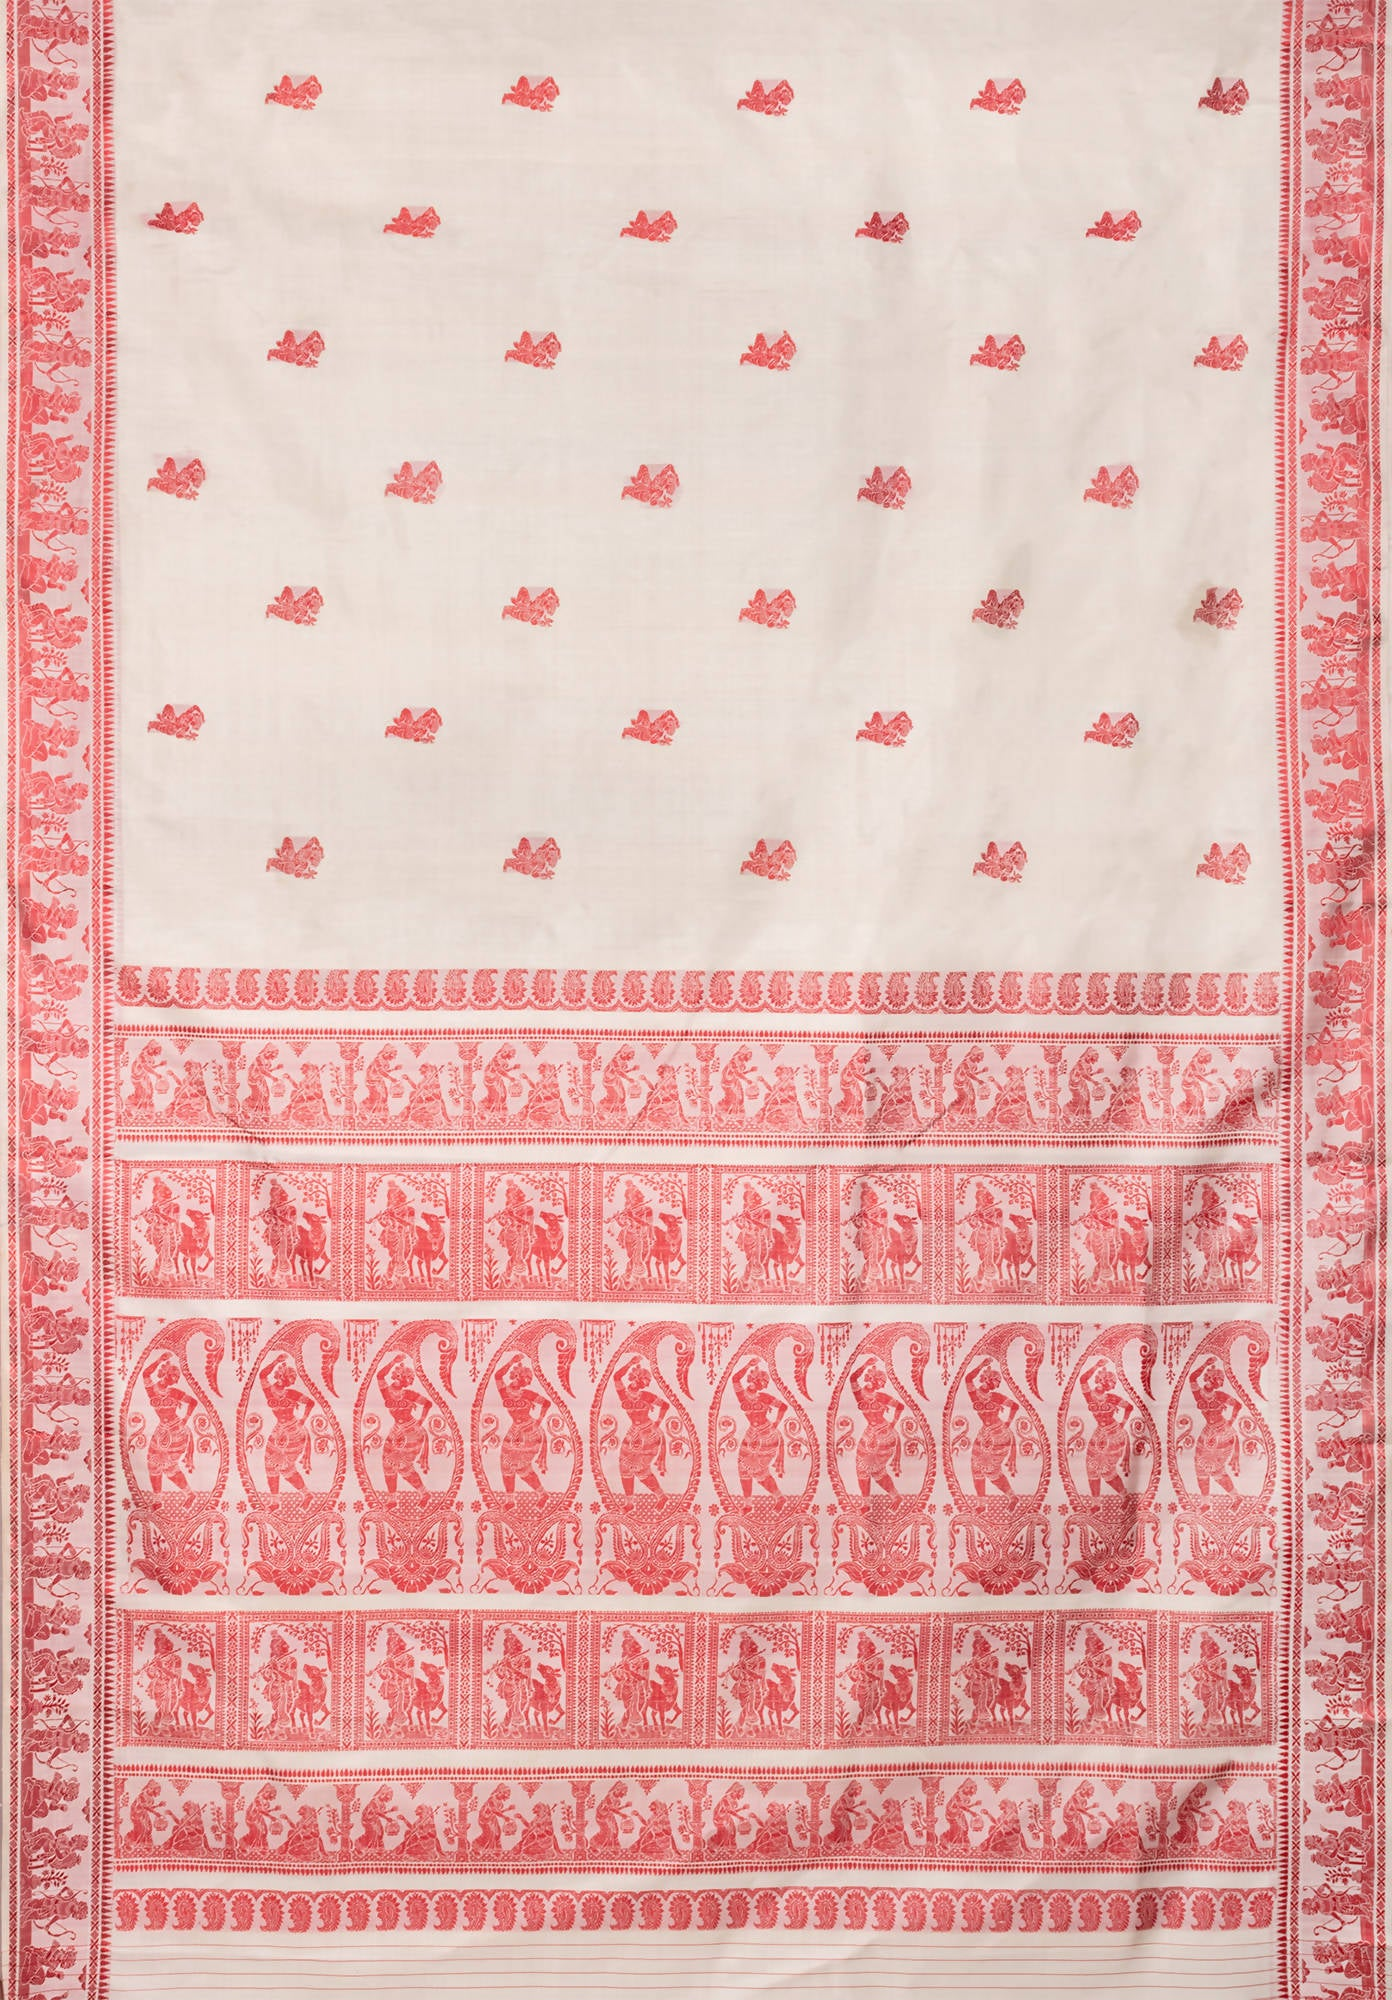 Biswa bangla handloom offwhite baluchari silk saree